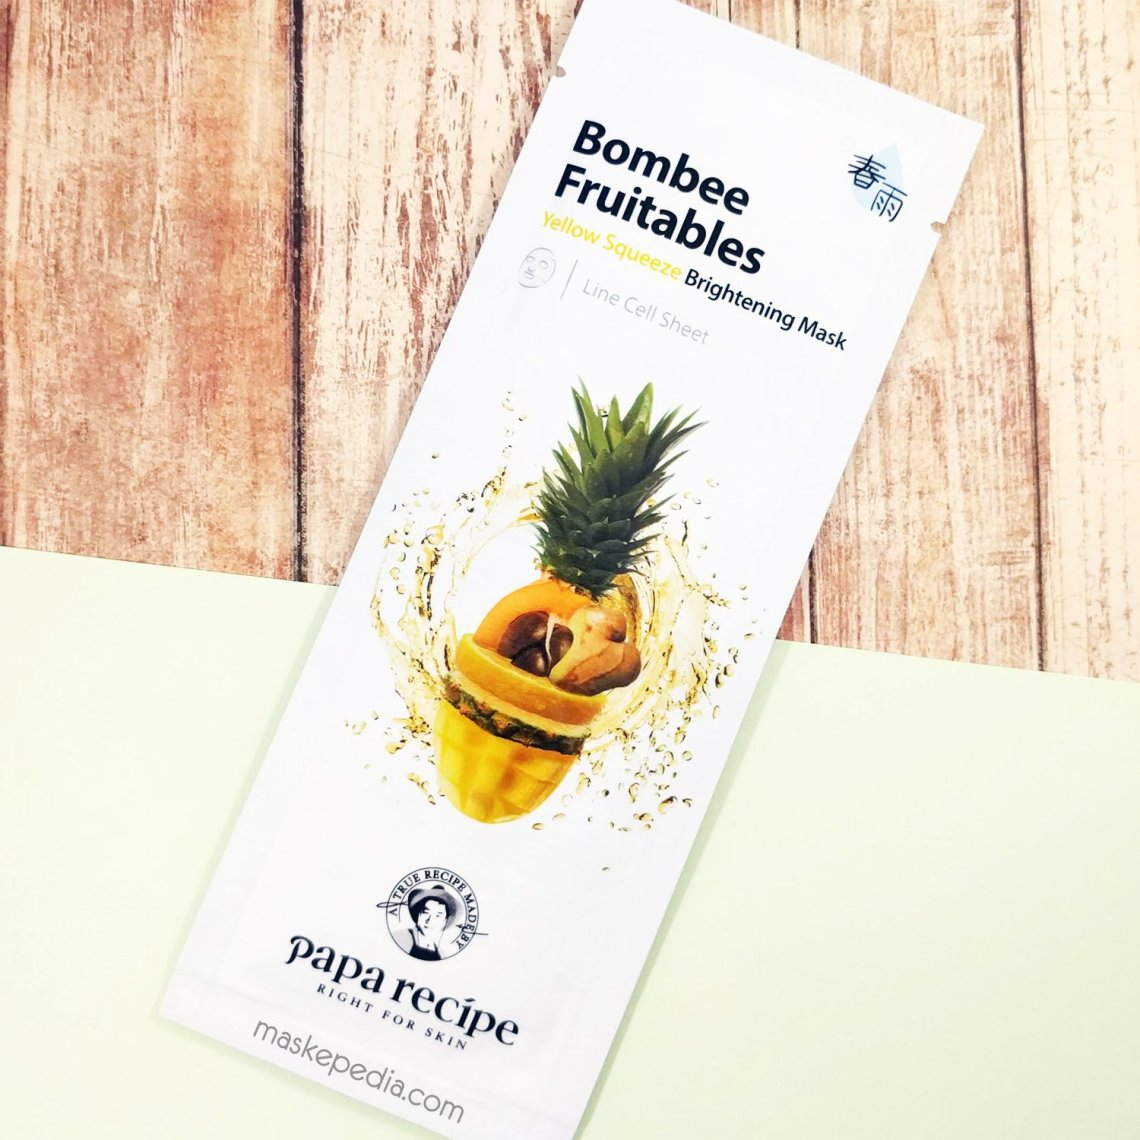 Papa Recipe Bombee Fruitables Yellow Squeeze Brightening Mask